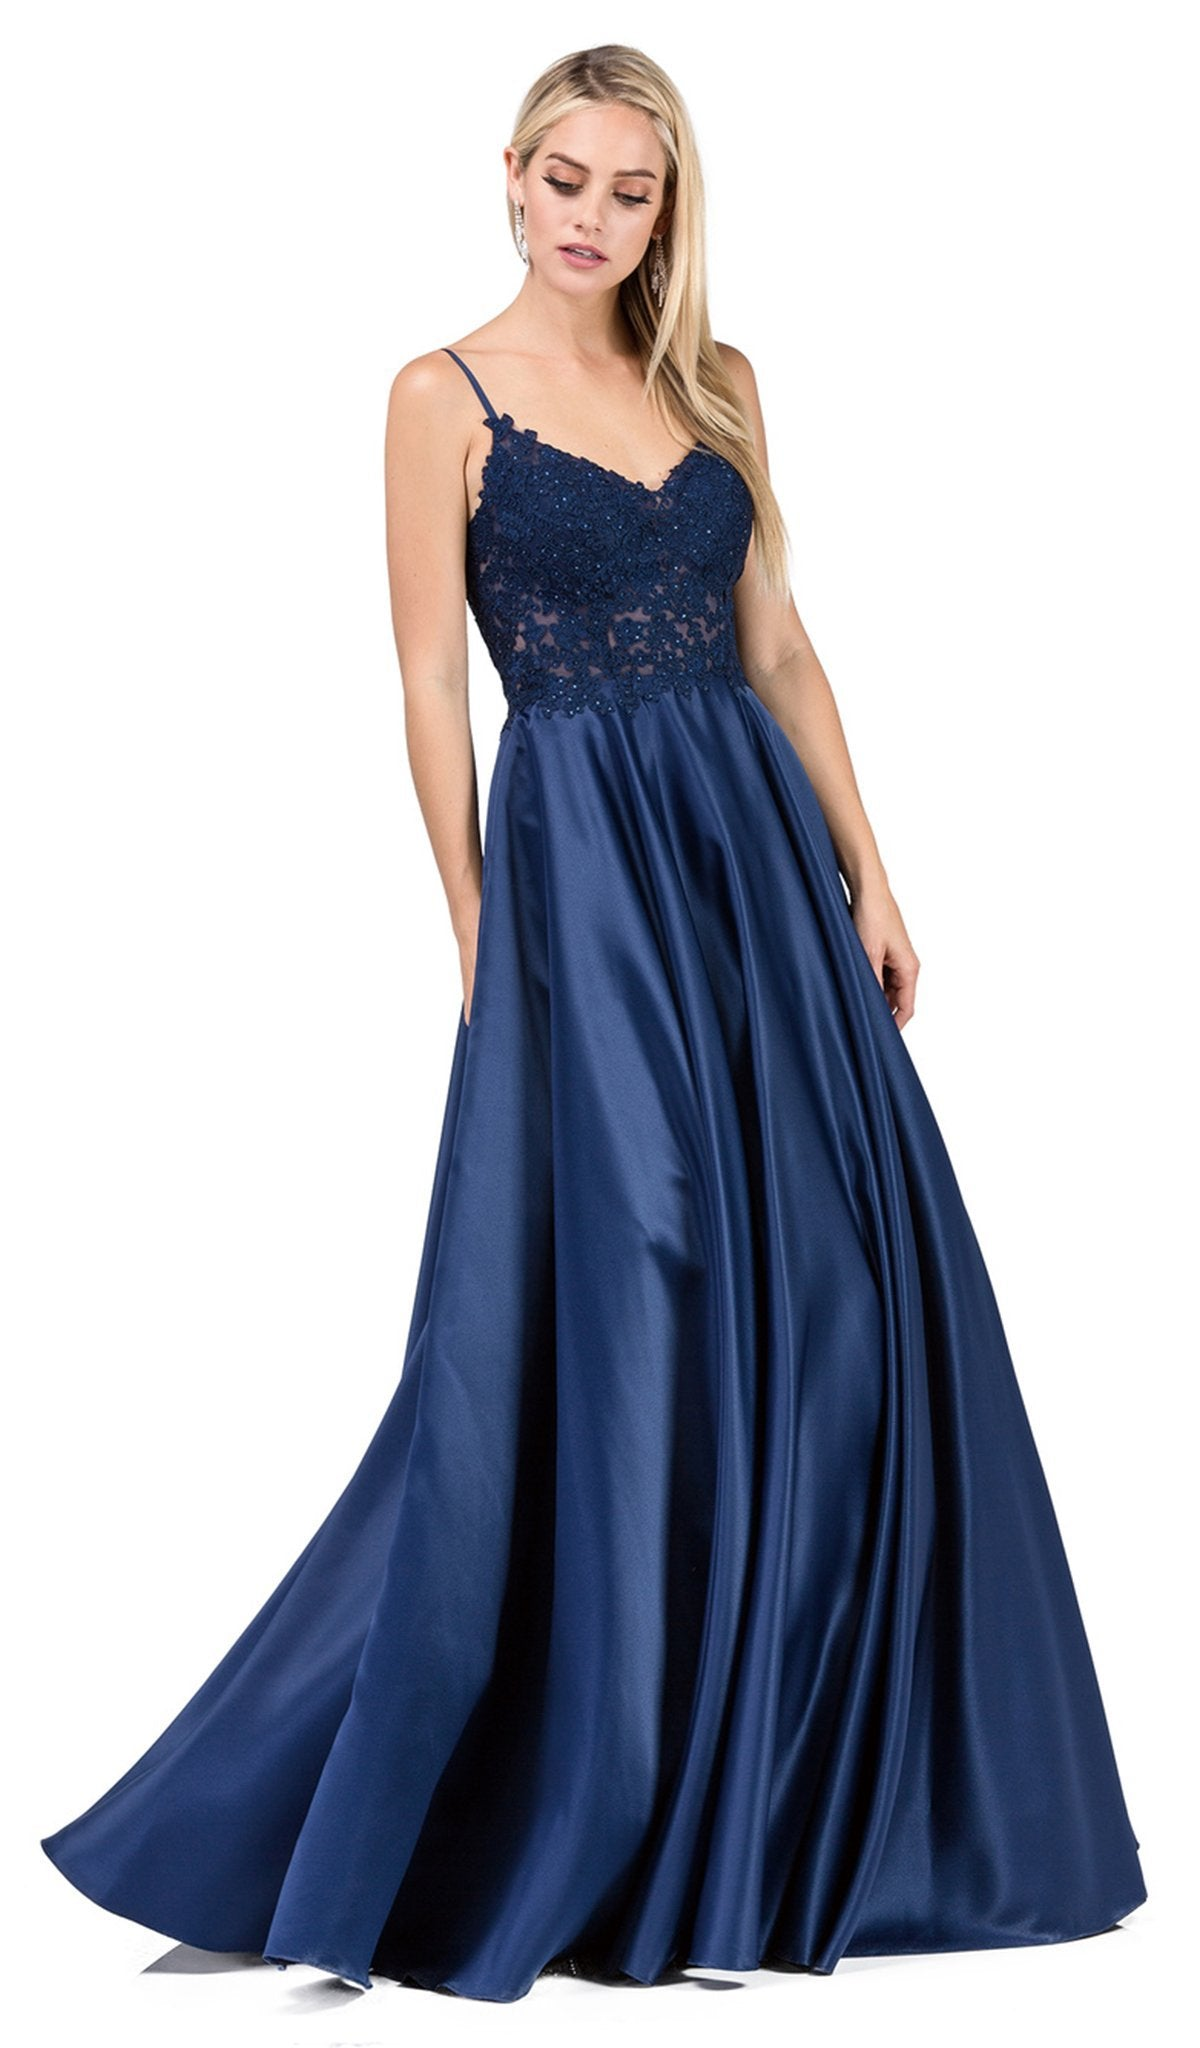 Dancing Queen - 2459A Jewel Appliqued Spaghetti Strapped A-Line Gown In Blue